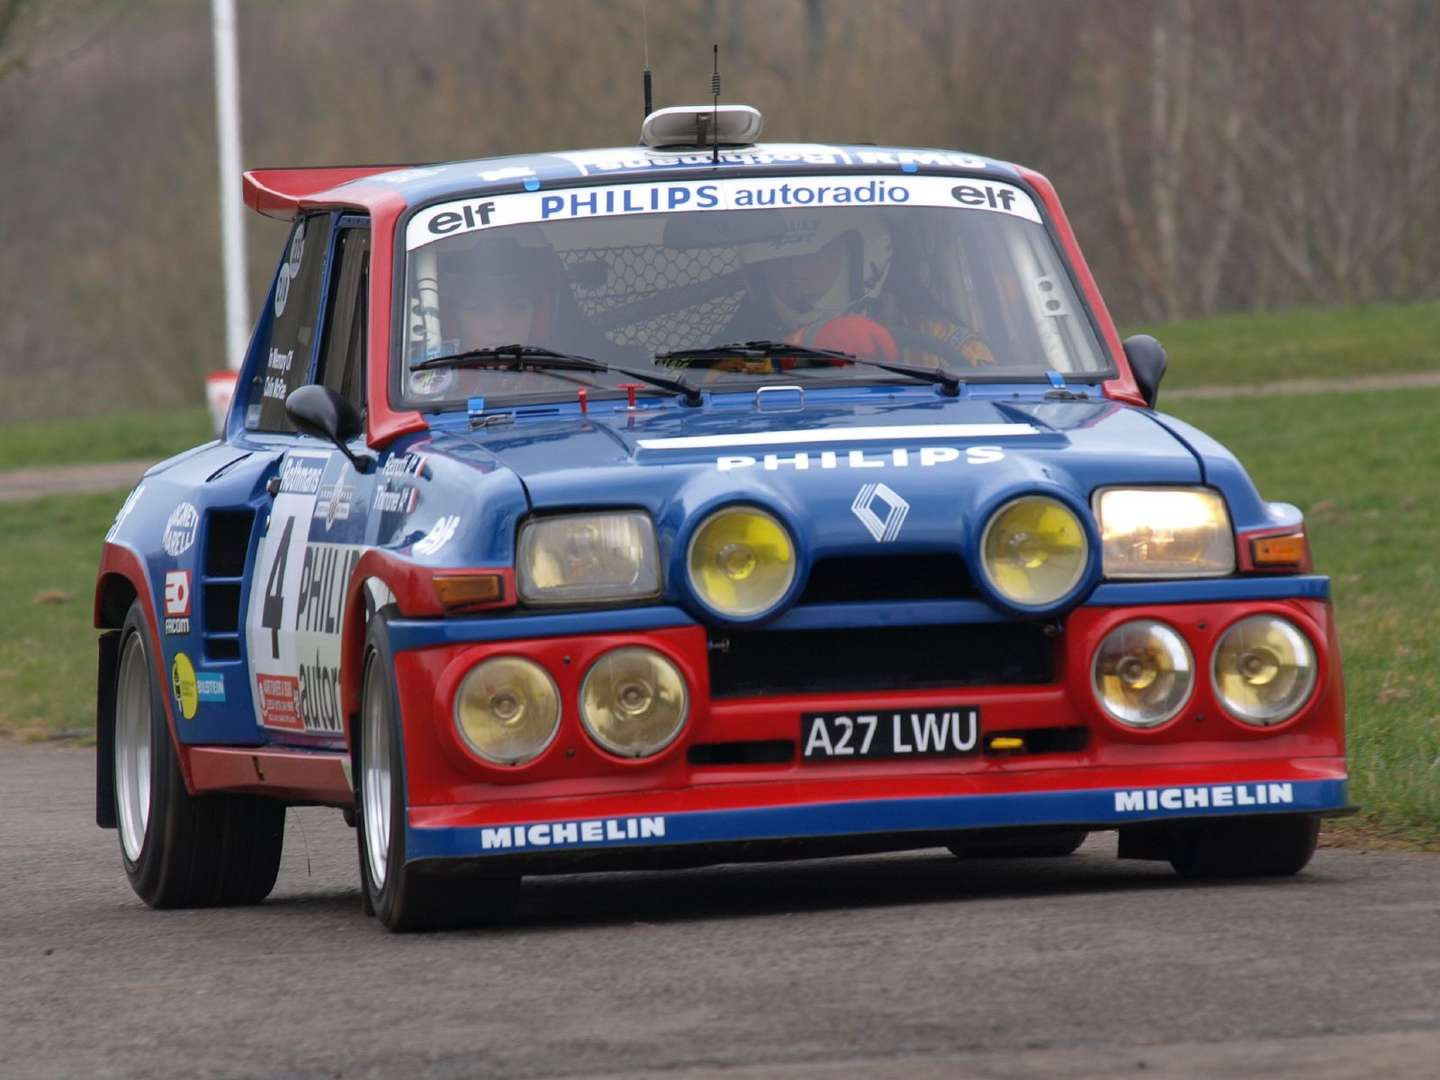 Renault 5 Turbo #8765828